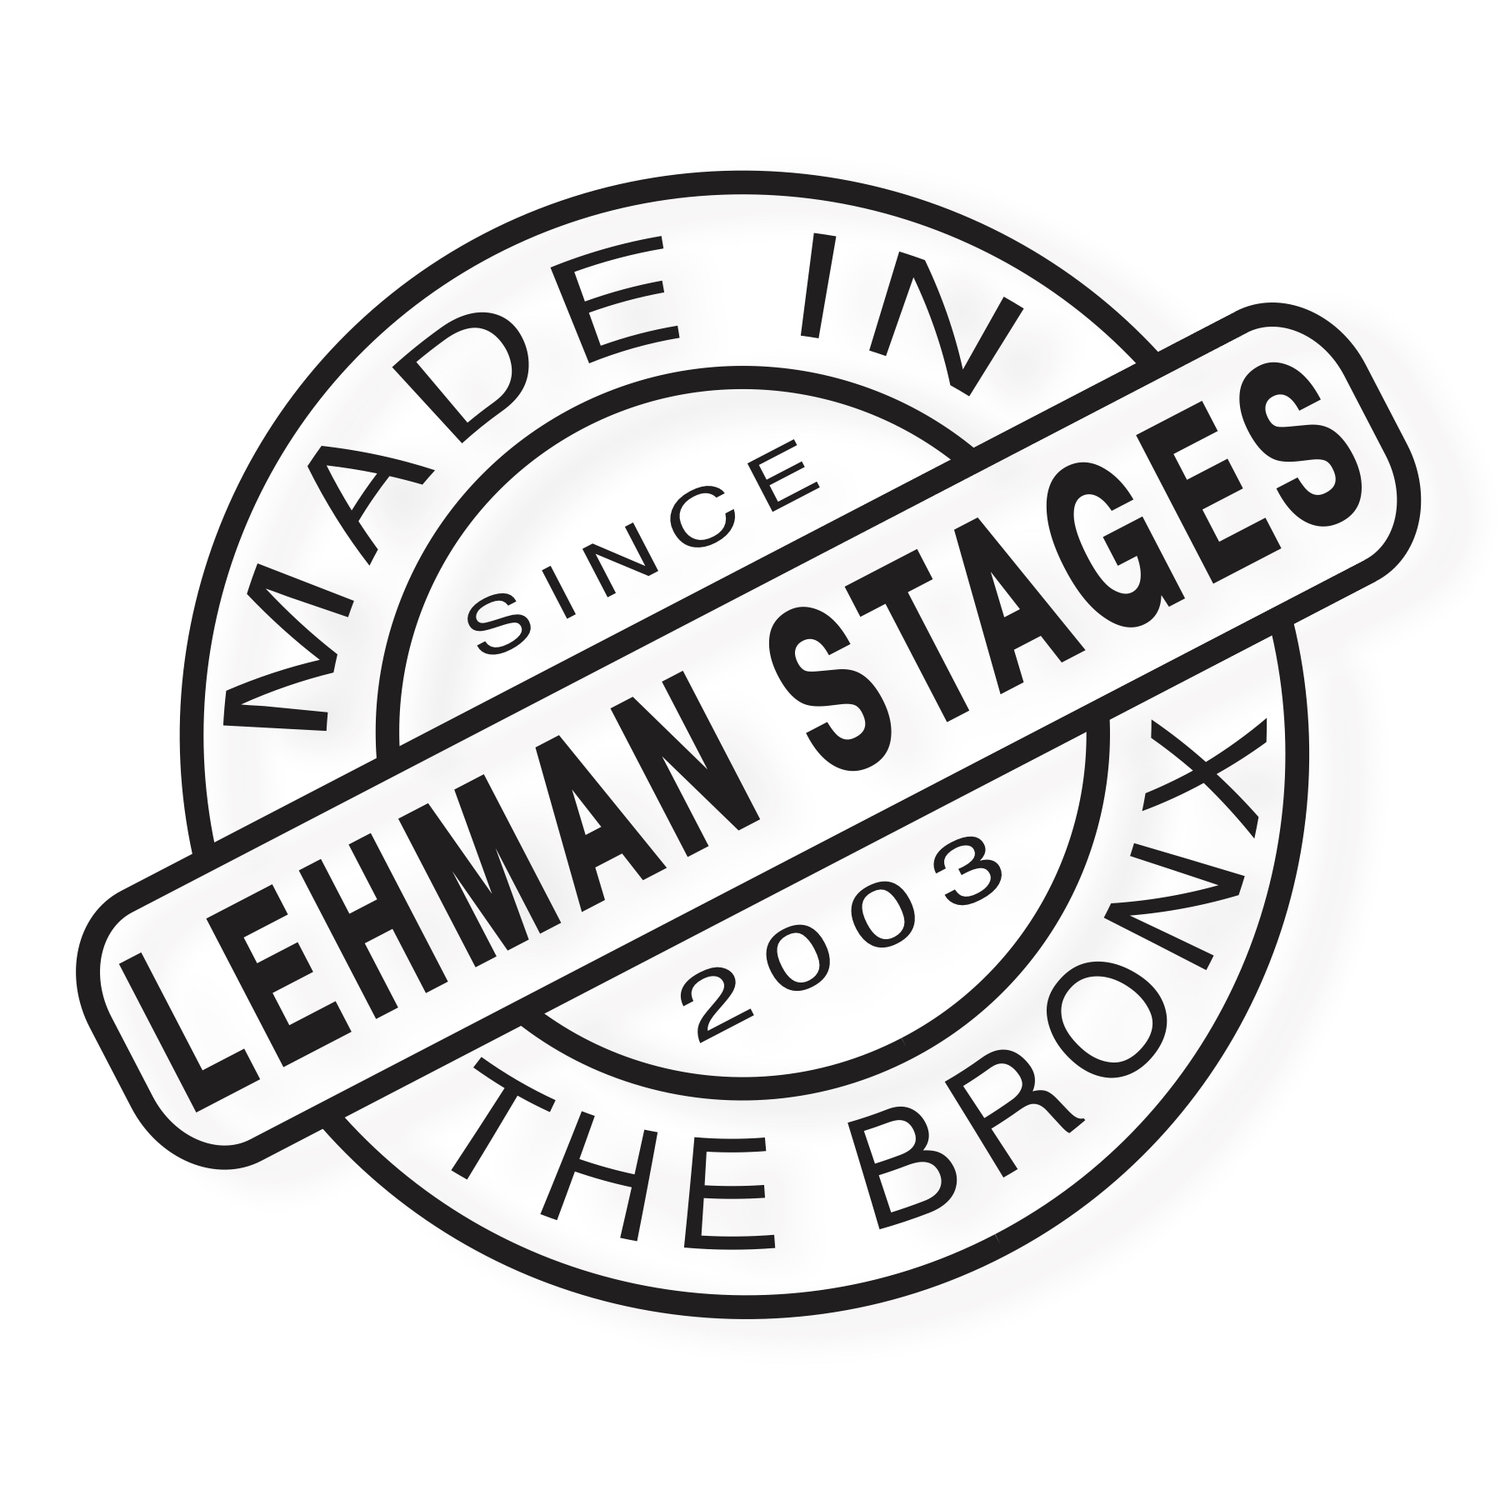 LEHMAN STAGES